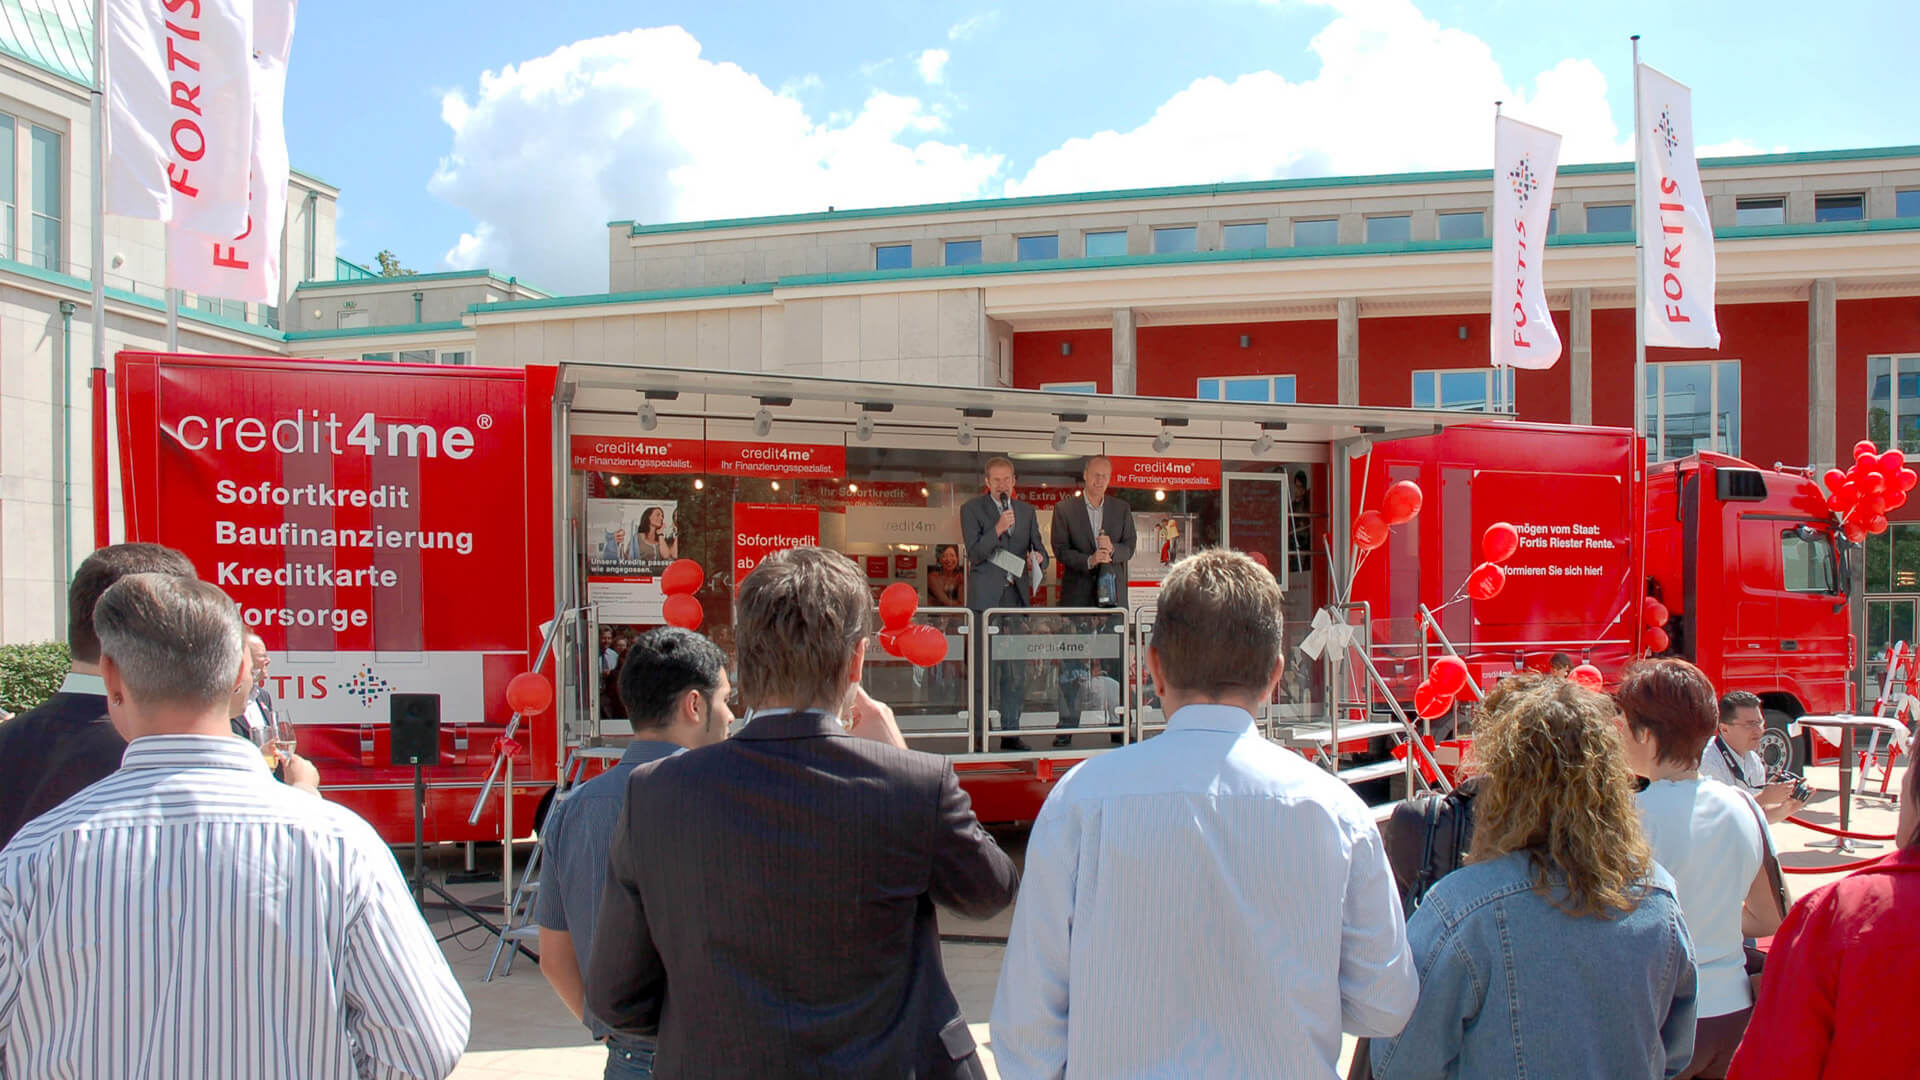 mobile-Filiale mobile-Zweigstelle Vertriebsmobil Beratungs-Mobil Promotionmobil Showtruck Infomobil